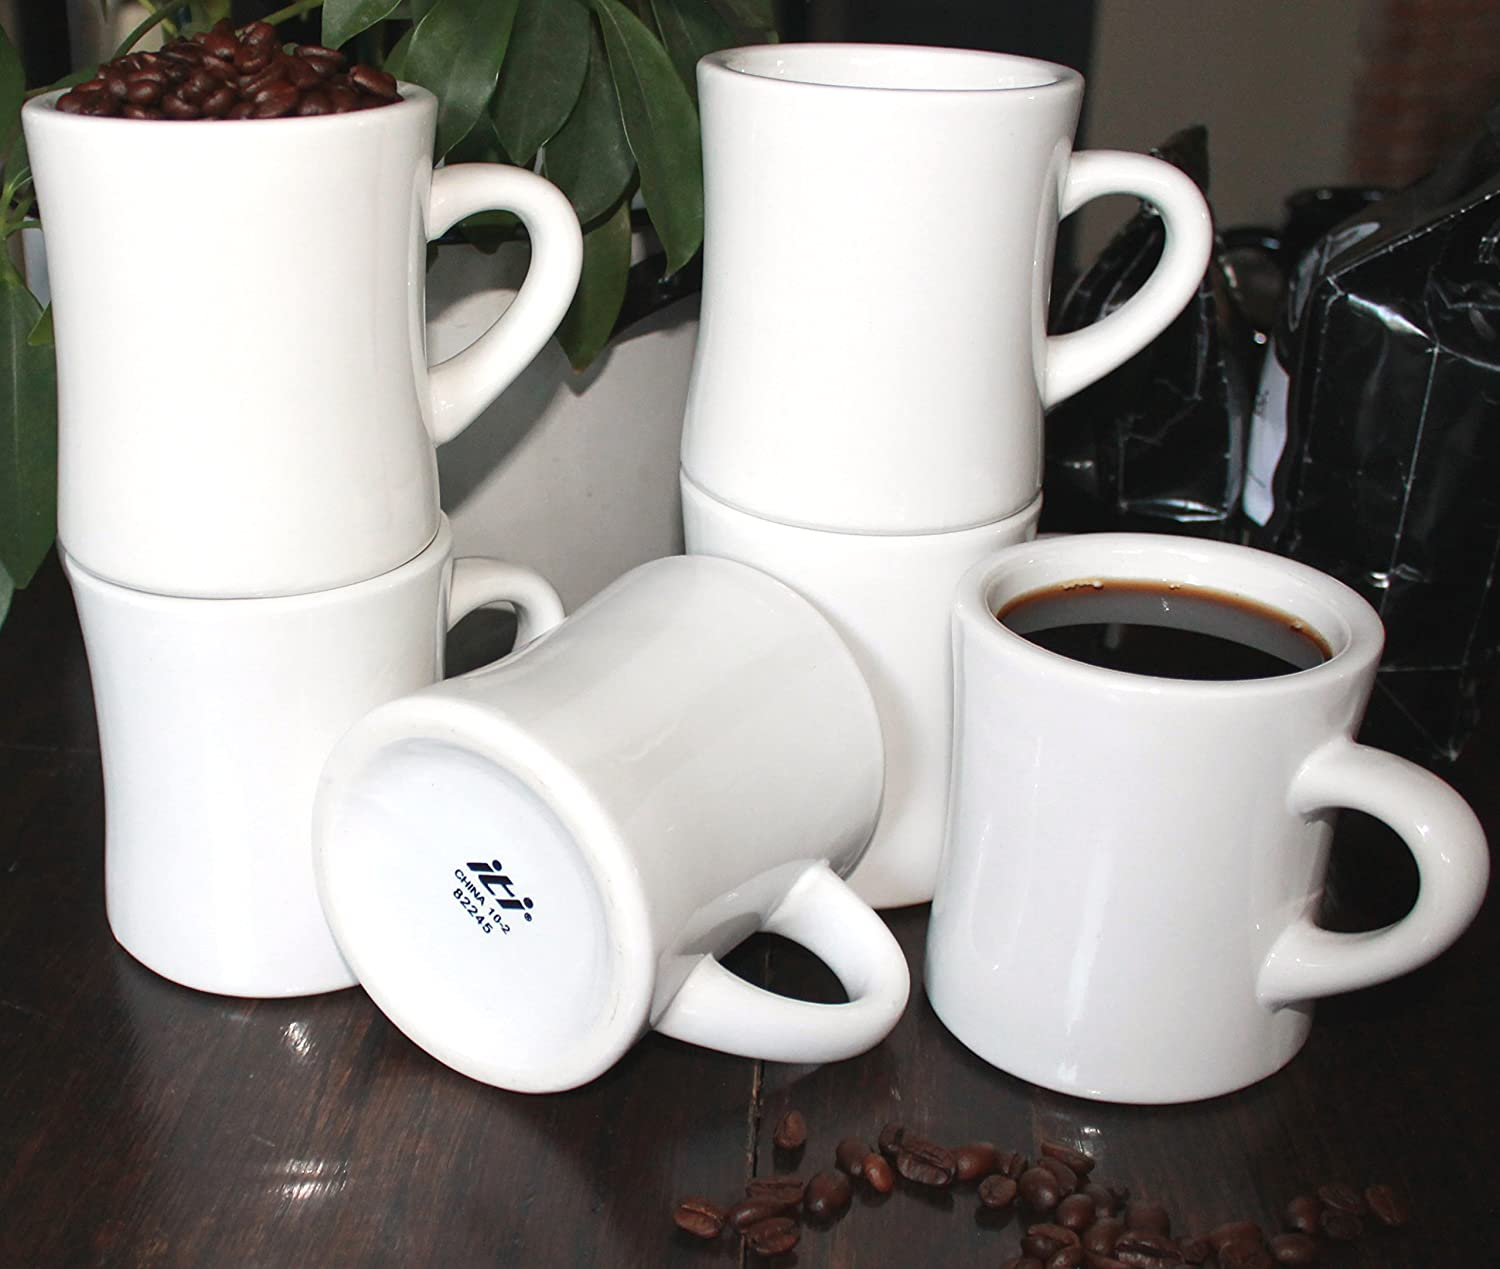 Check Amazon's Price on these white diner-style coffee mugs